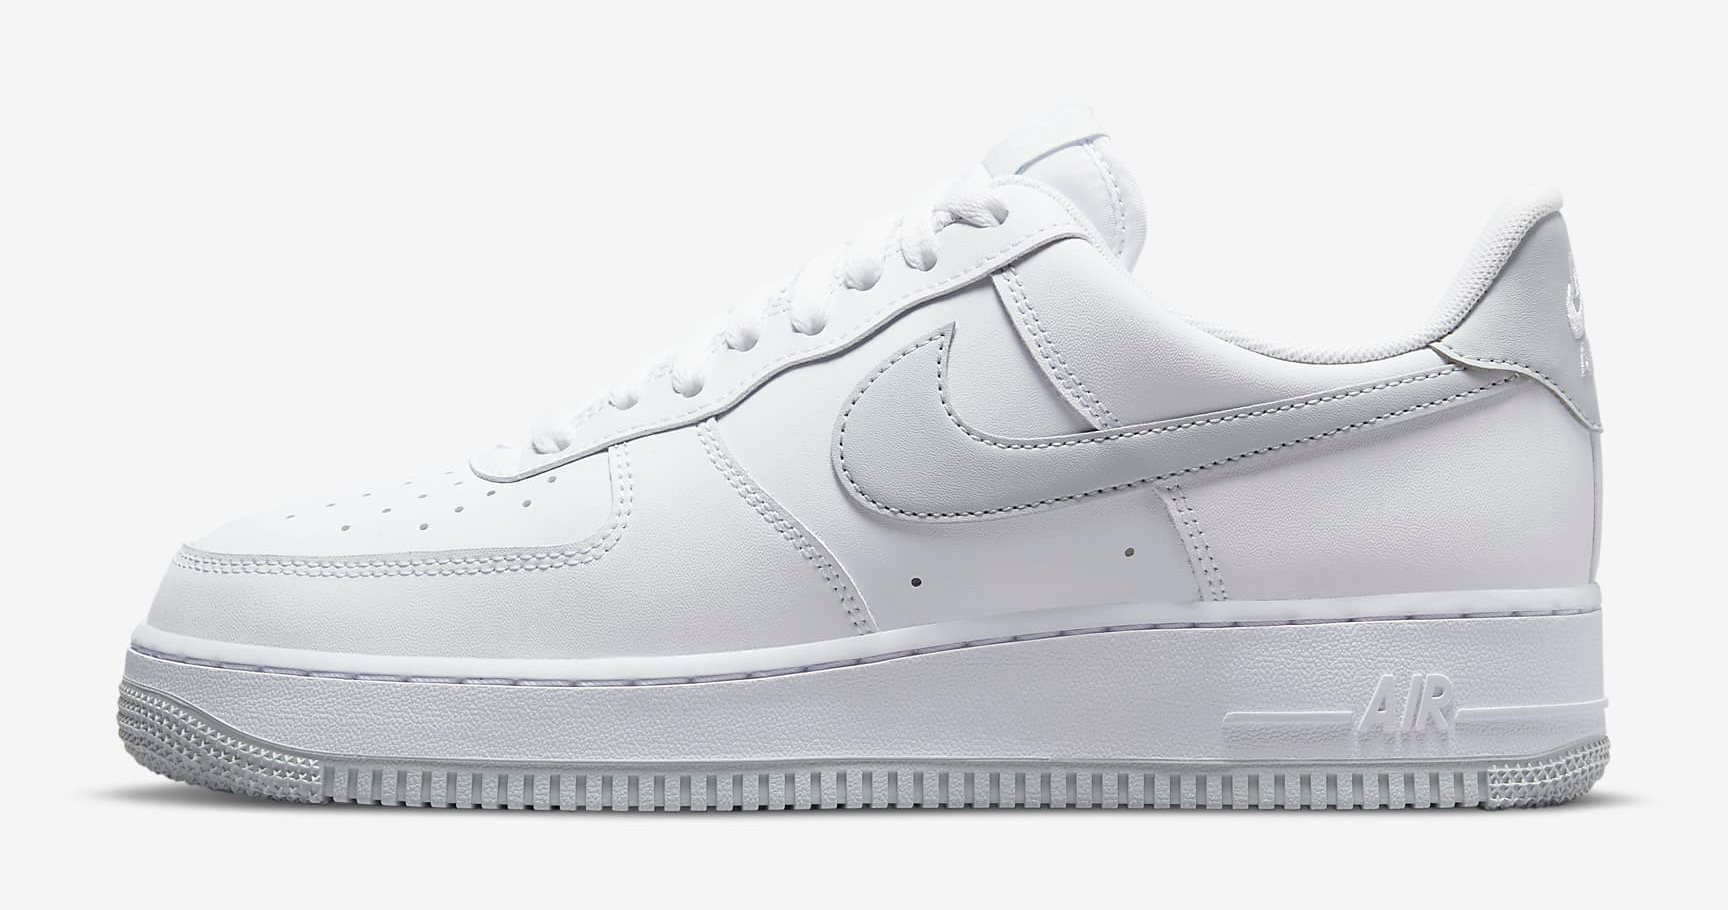 nike-air-force-1-low-white-pure-platinum-2